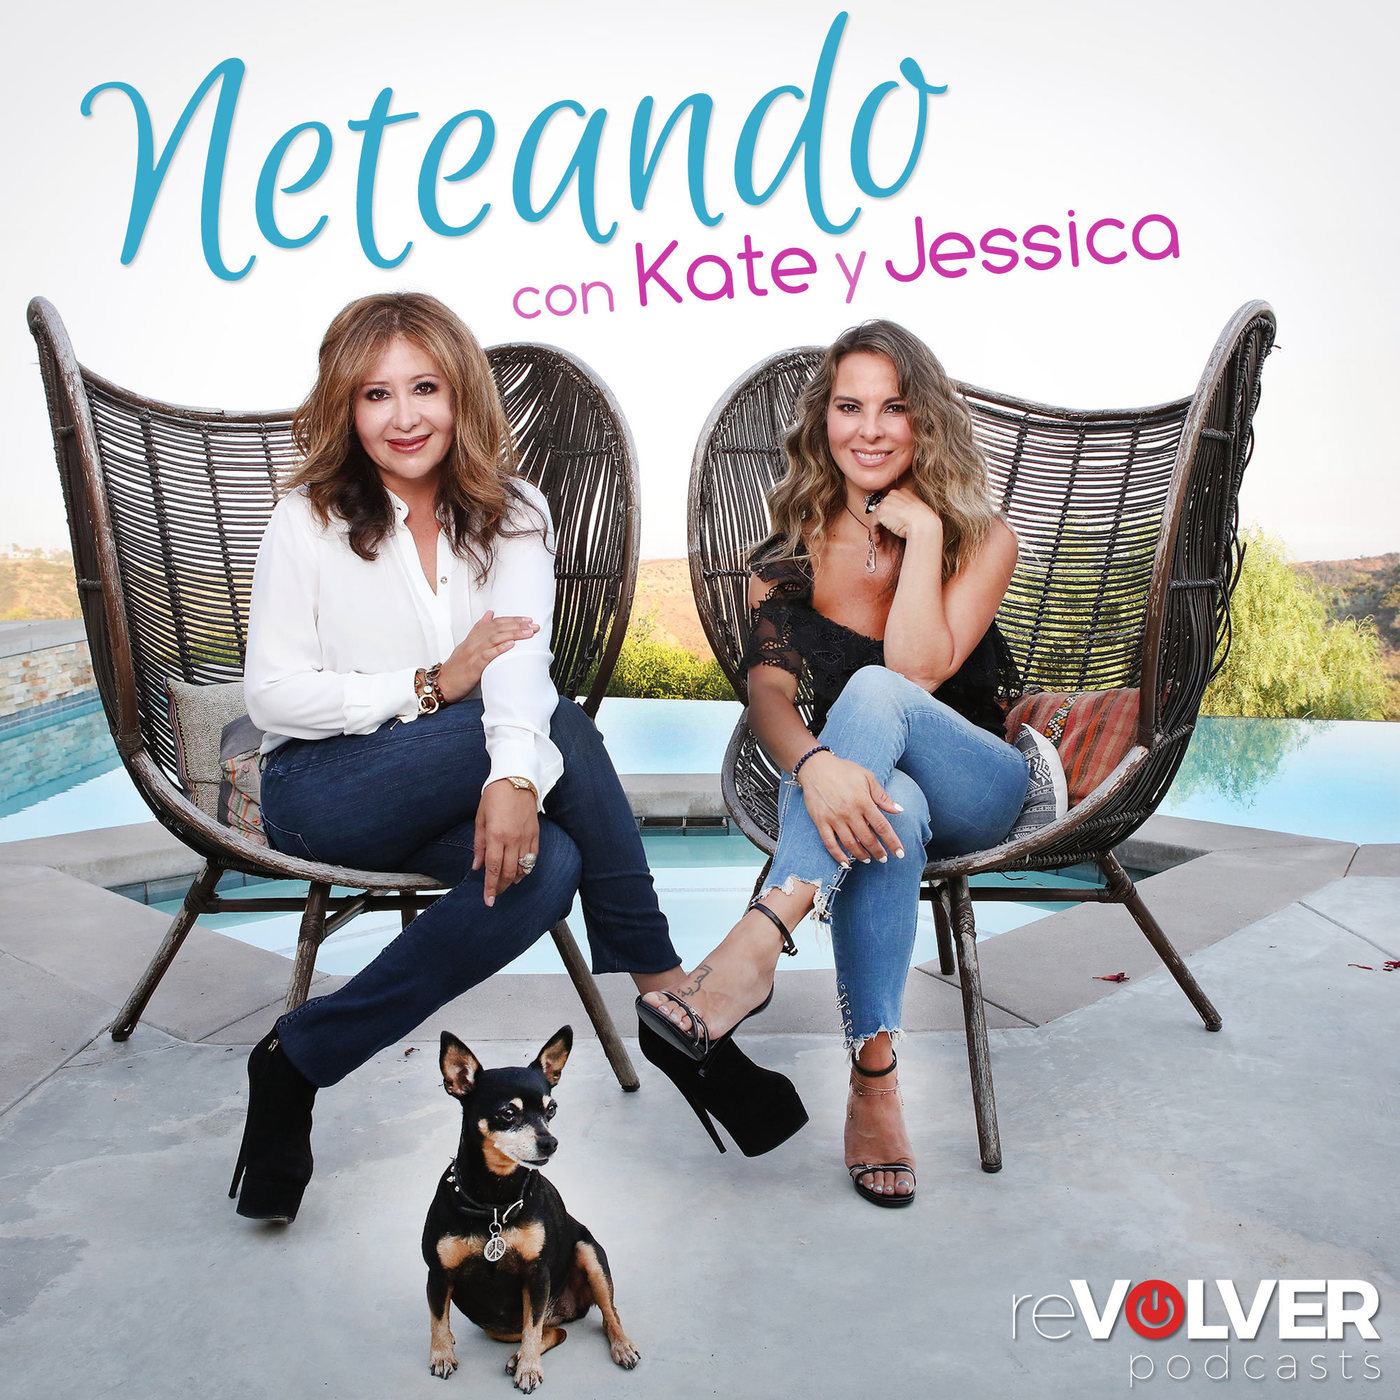 Neteando con Kate y Jessica by reVolver on Apple Podcasts